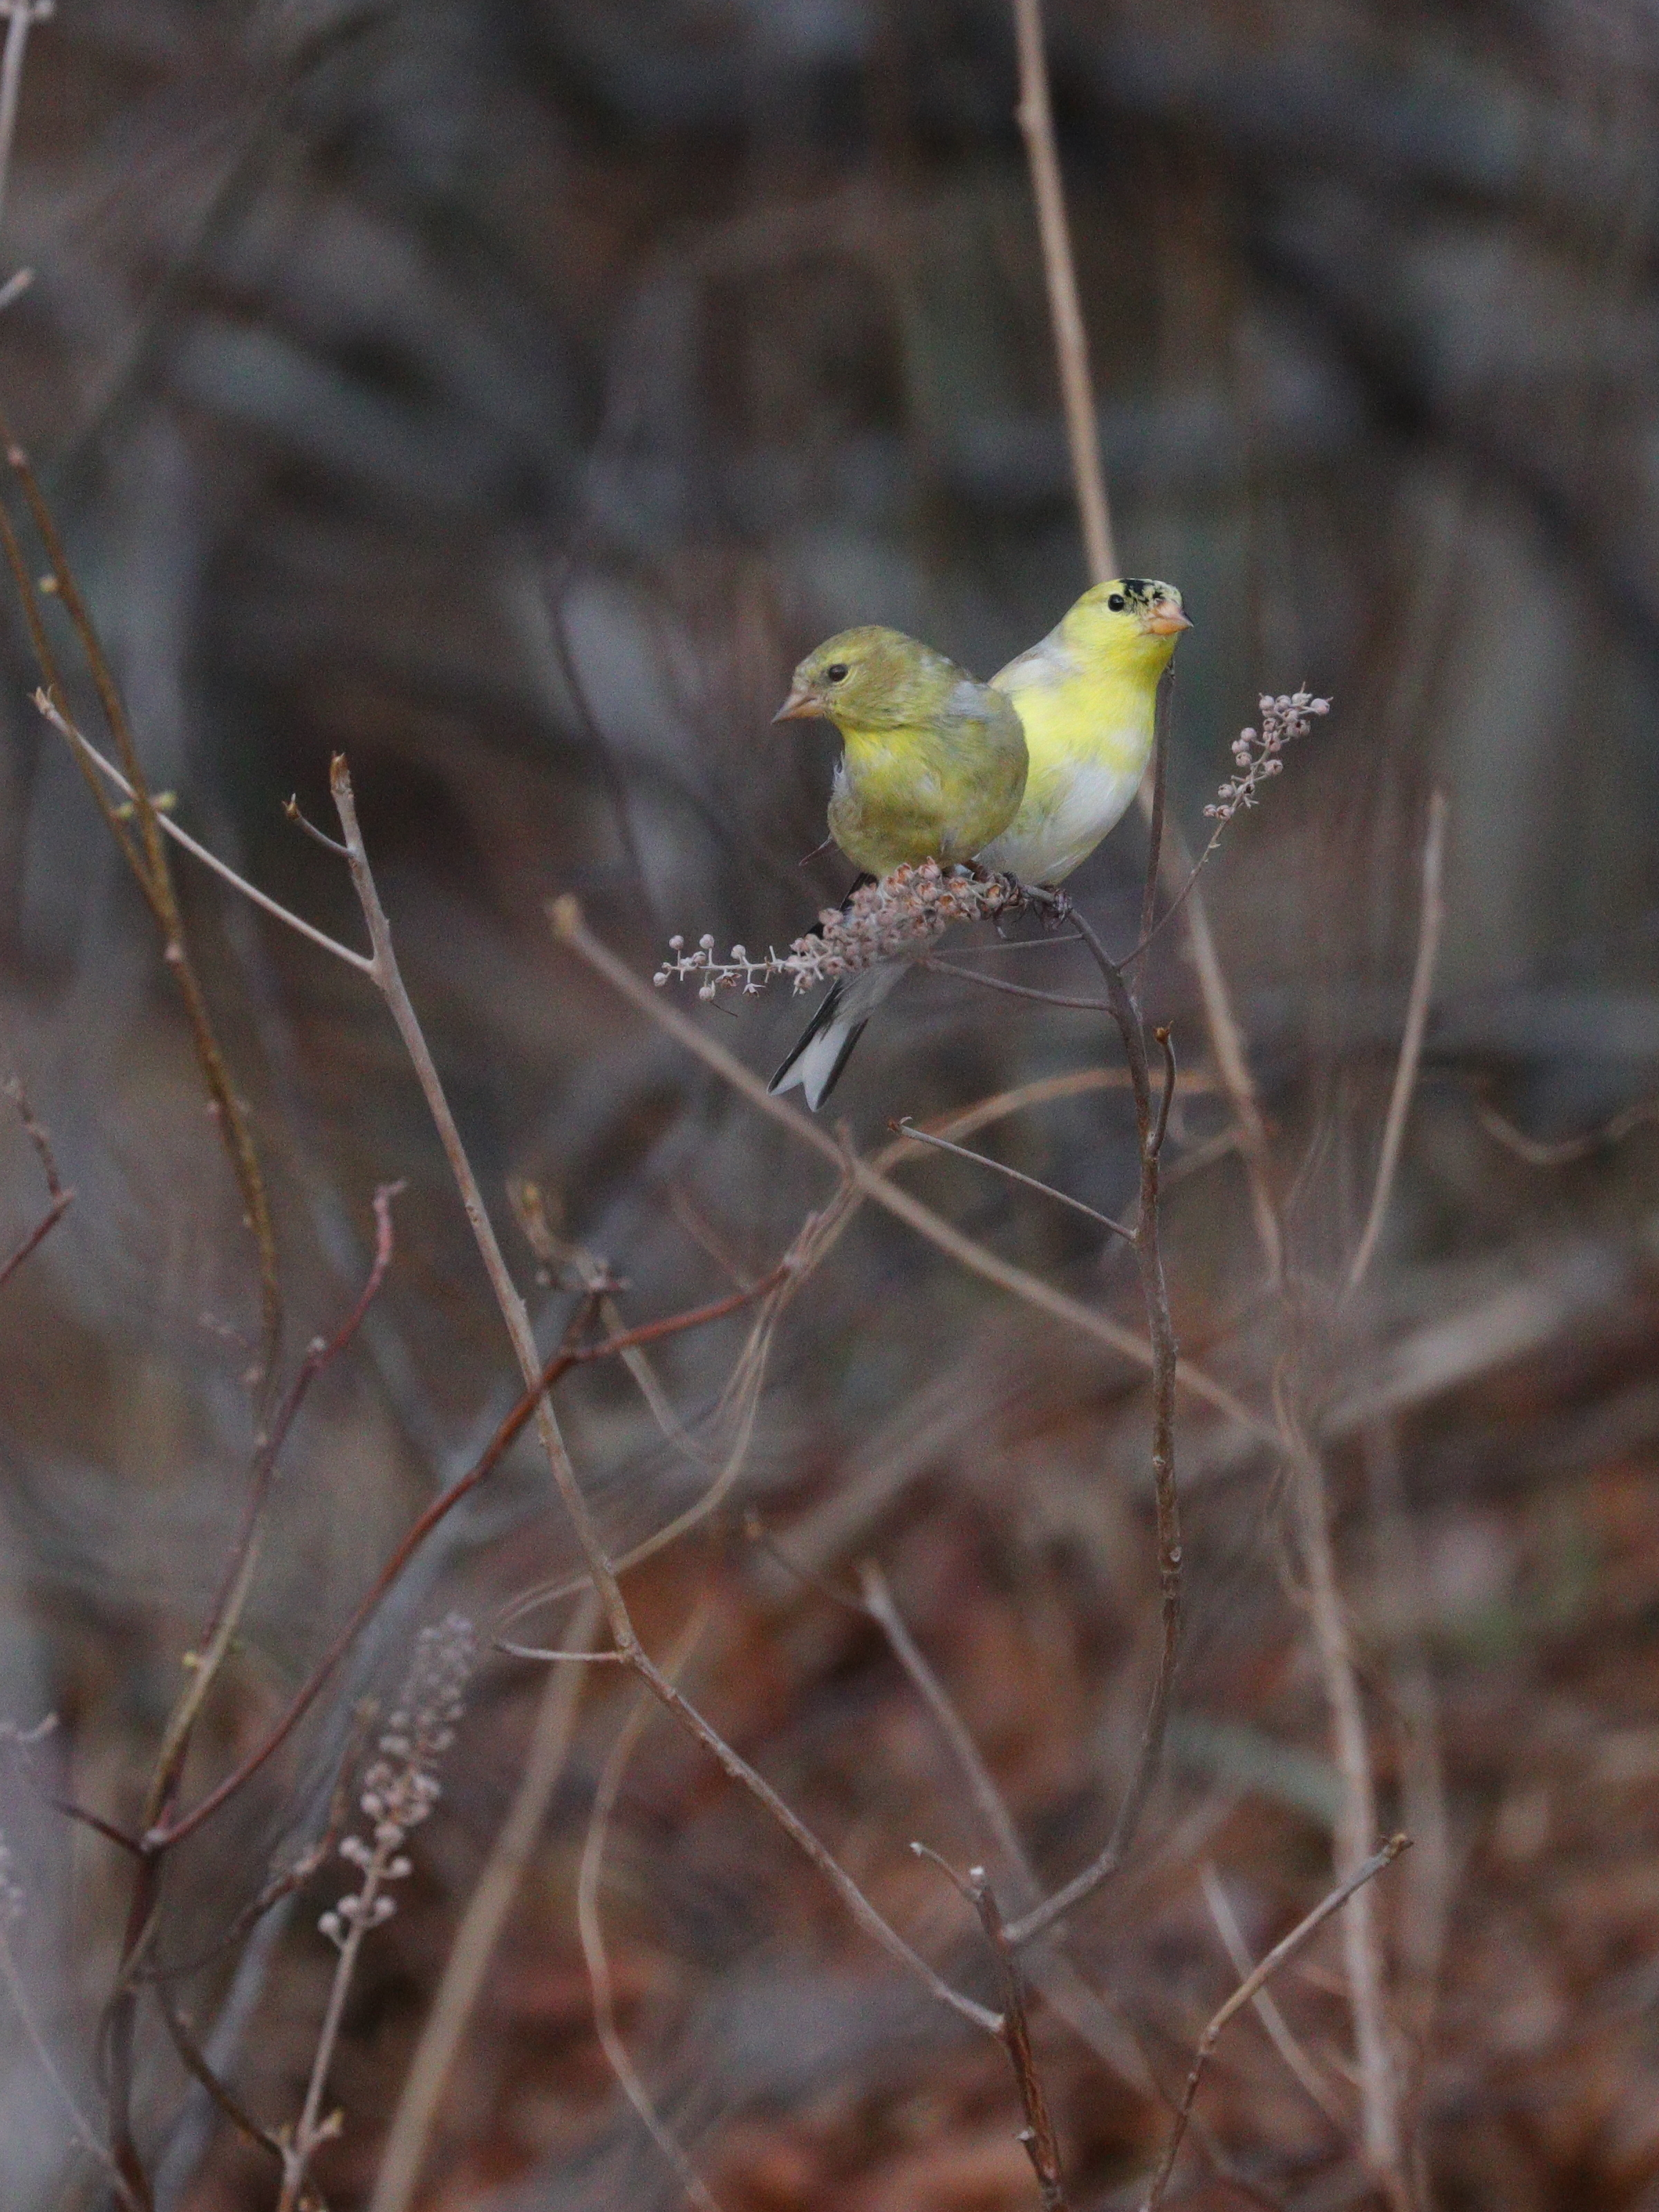 April 29, 2018 | American Goldfinches | Photo By: Cyndi Jackson